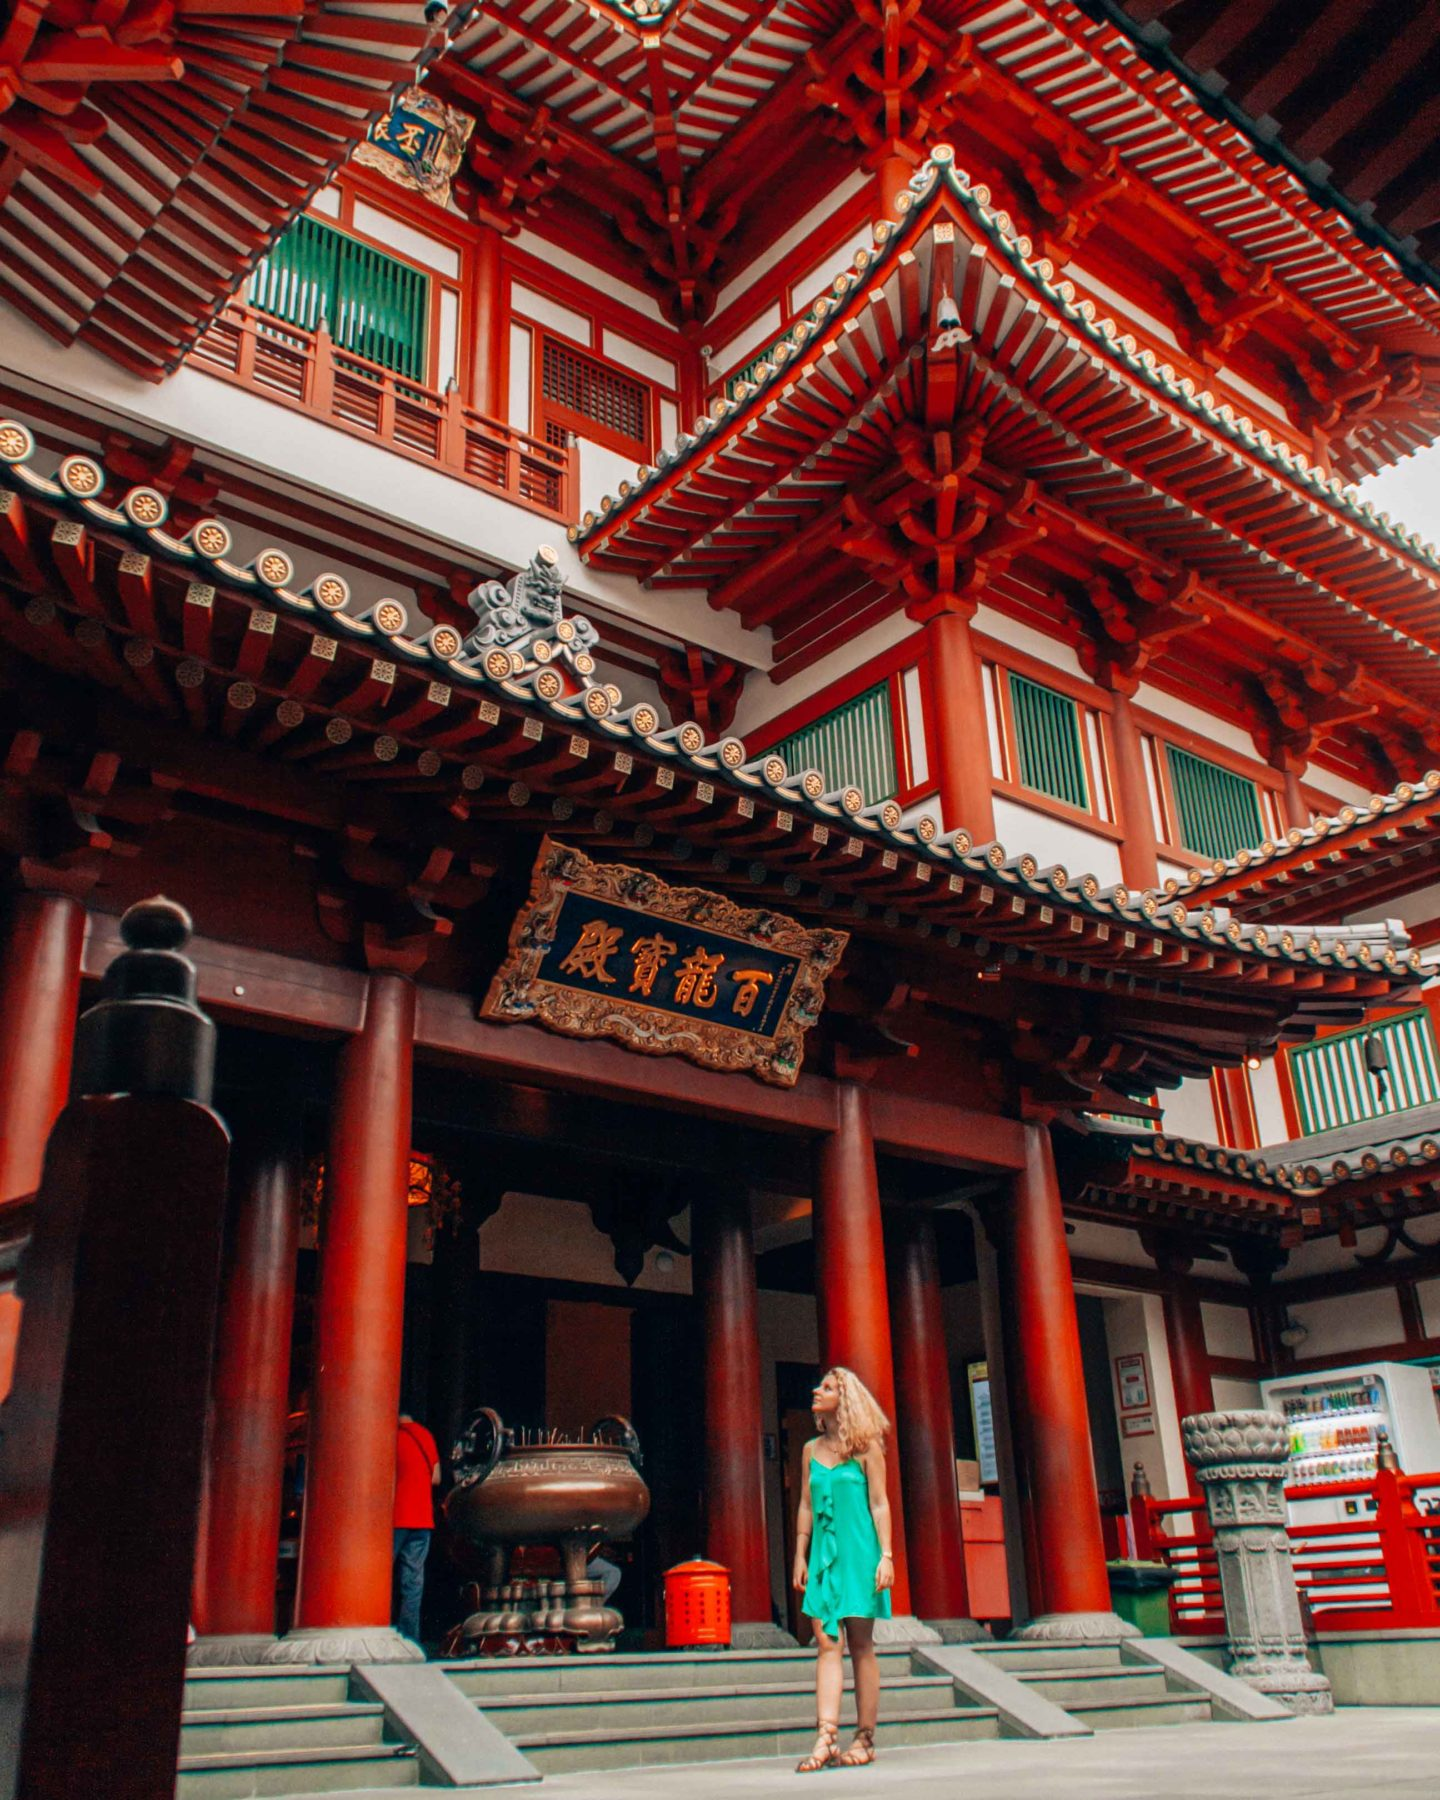 Inside of the Buddha Tooth Relic Temple in Chinatown, Singapore